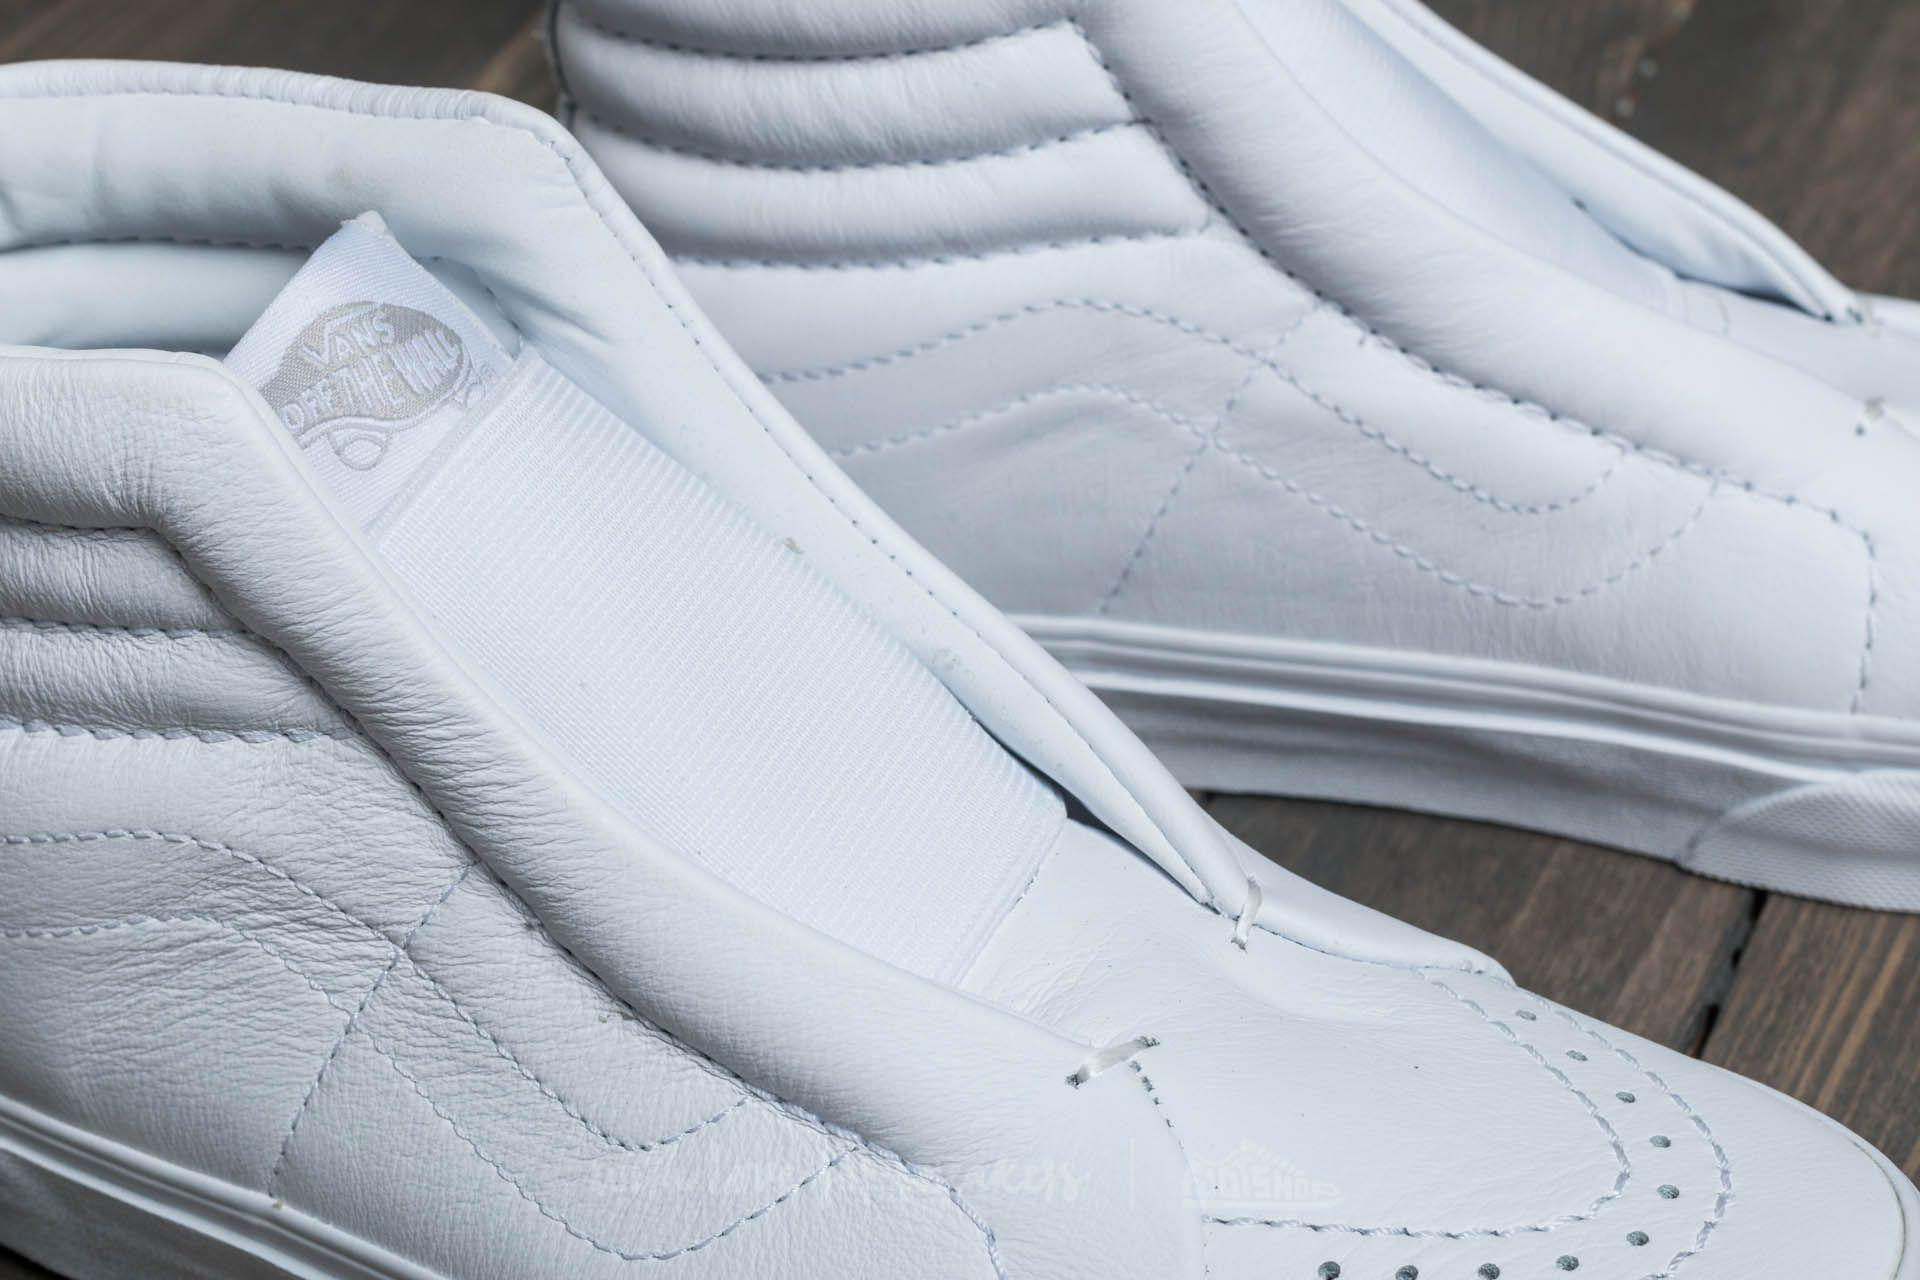 a0987f1706a9 Lyst - Vans Sk8-hi Reissue Laceless (leather) True White in White ...